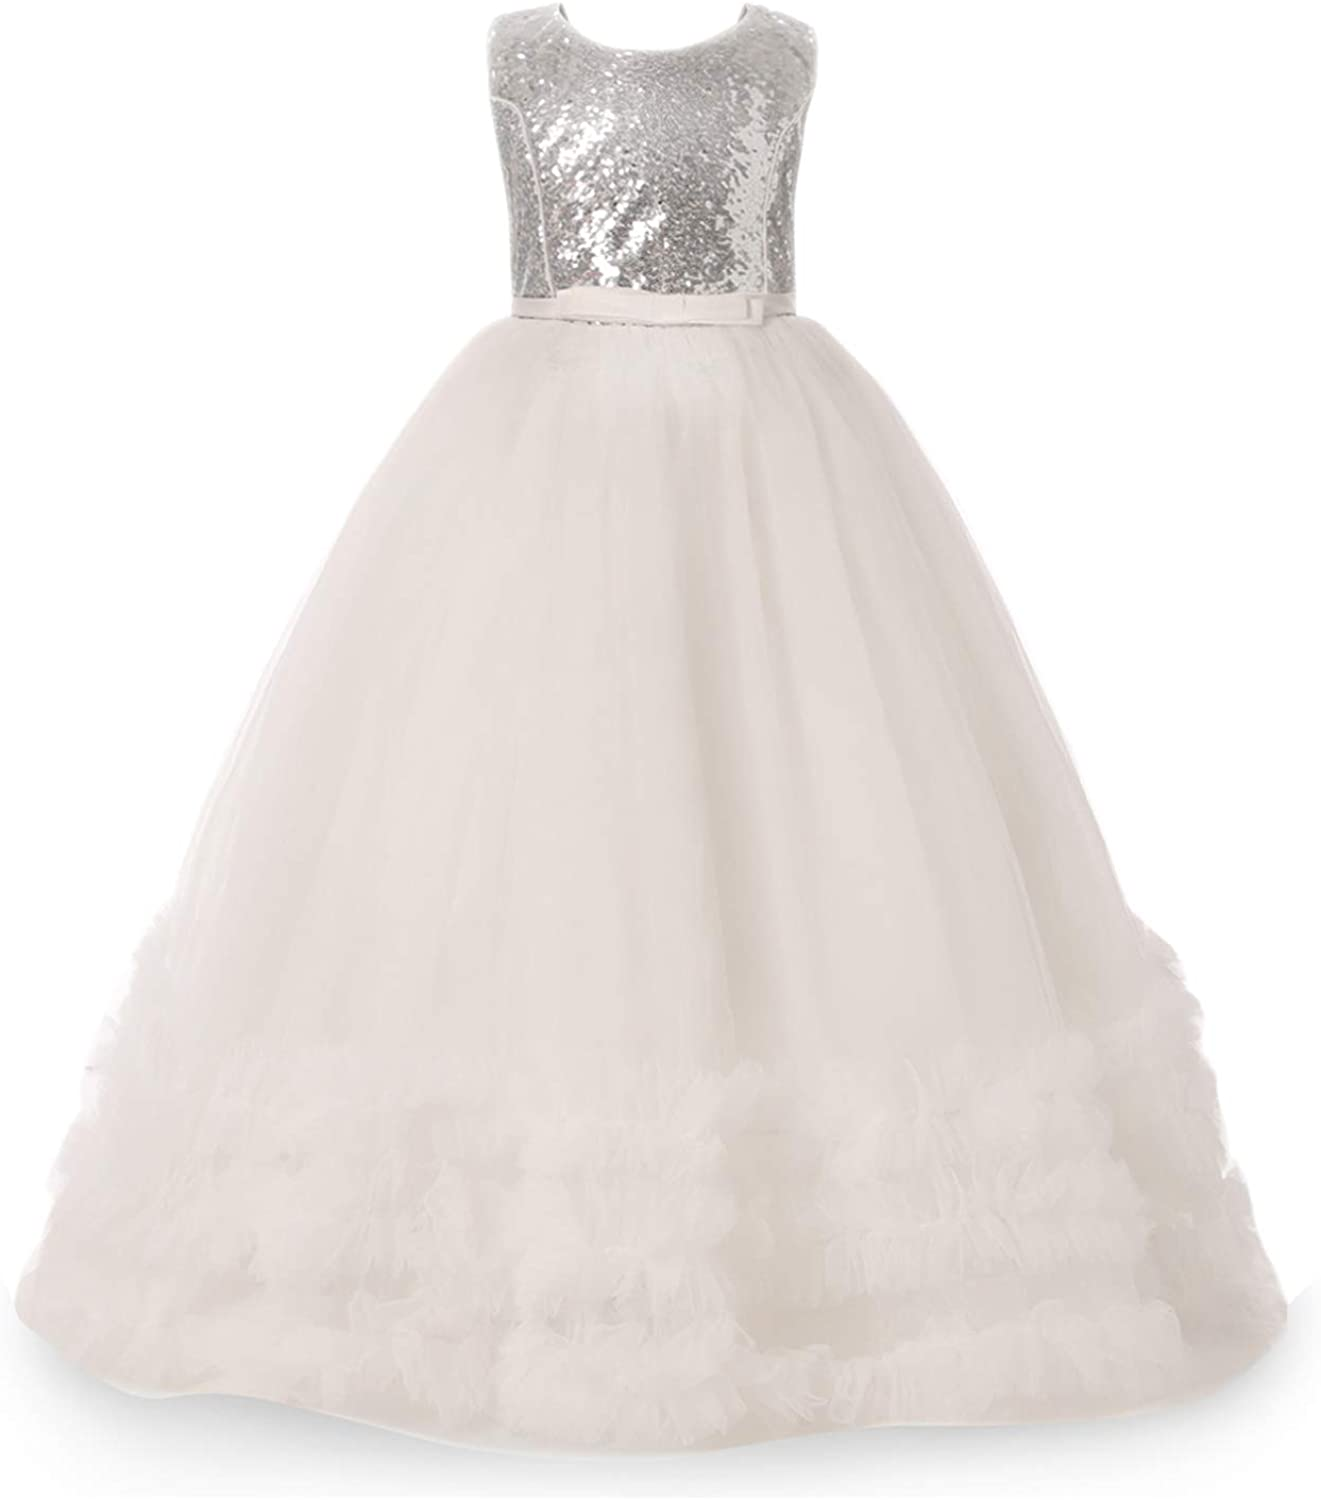 NNJXD Girls Princess Pageant Dress Kids Prom Ball Gowns Wedding Party Flower Dresses